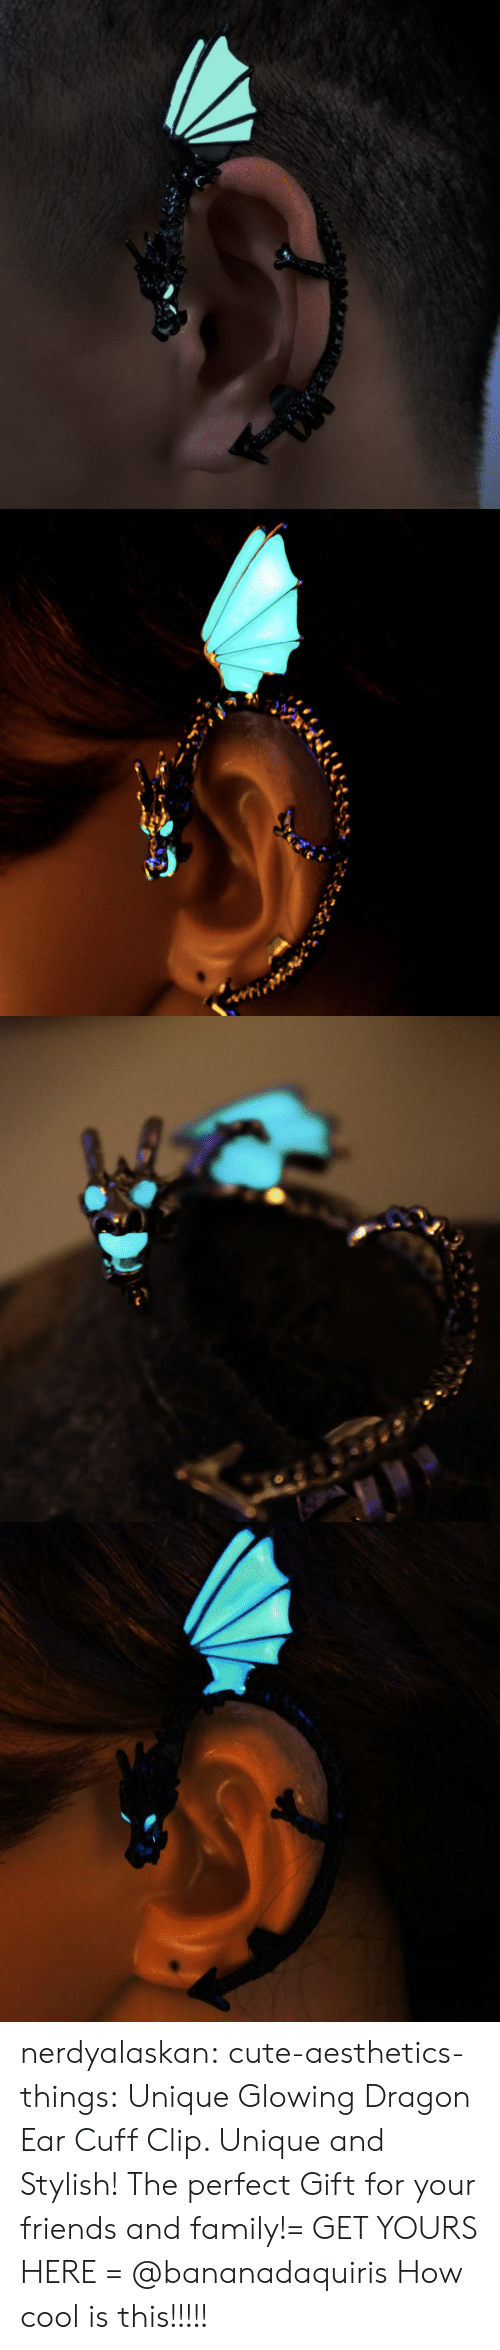 Cute, Family, and Friends: nerdyalaskan:  cute-aesthetics-things:  Unique GlowingDragon Ear Cuff Clip. Unique and Stylish! The perfect Gift for your friends and family!= GET YOURS HERE =  @bananadaquiris  How cool is this!!!!!